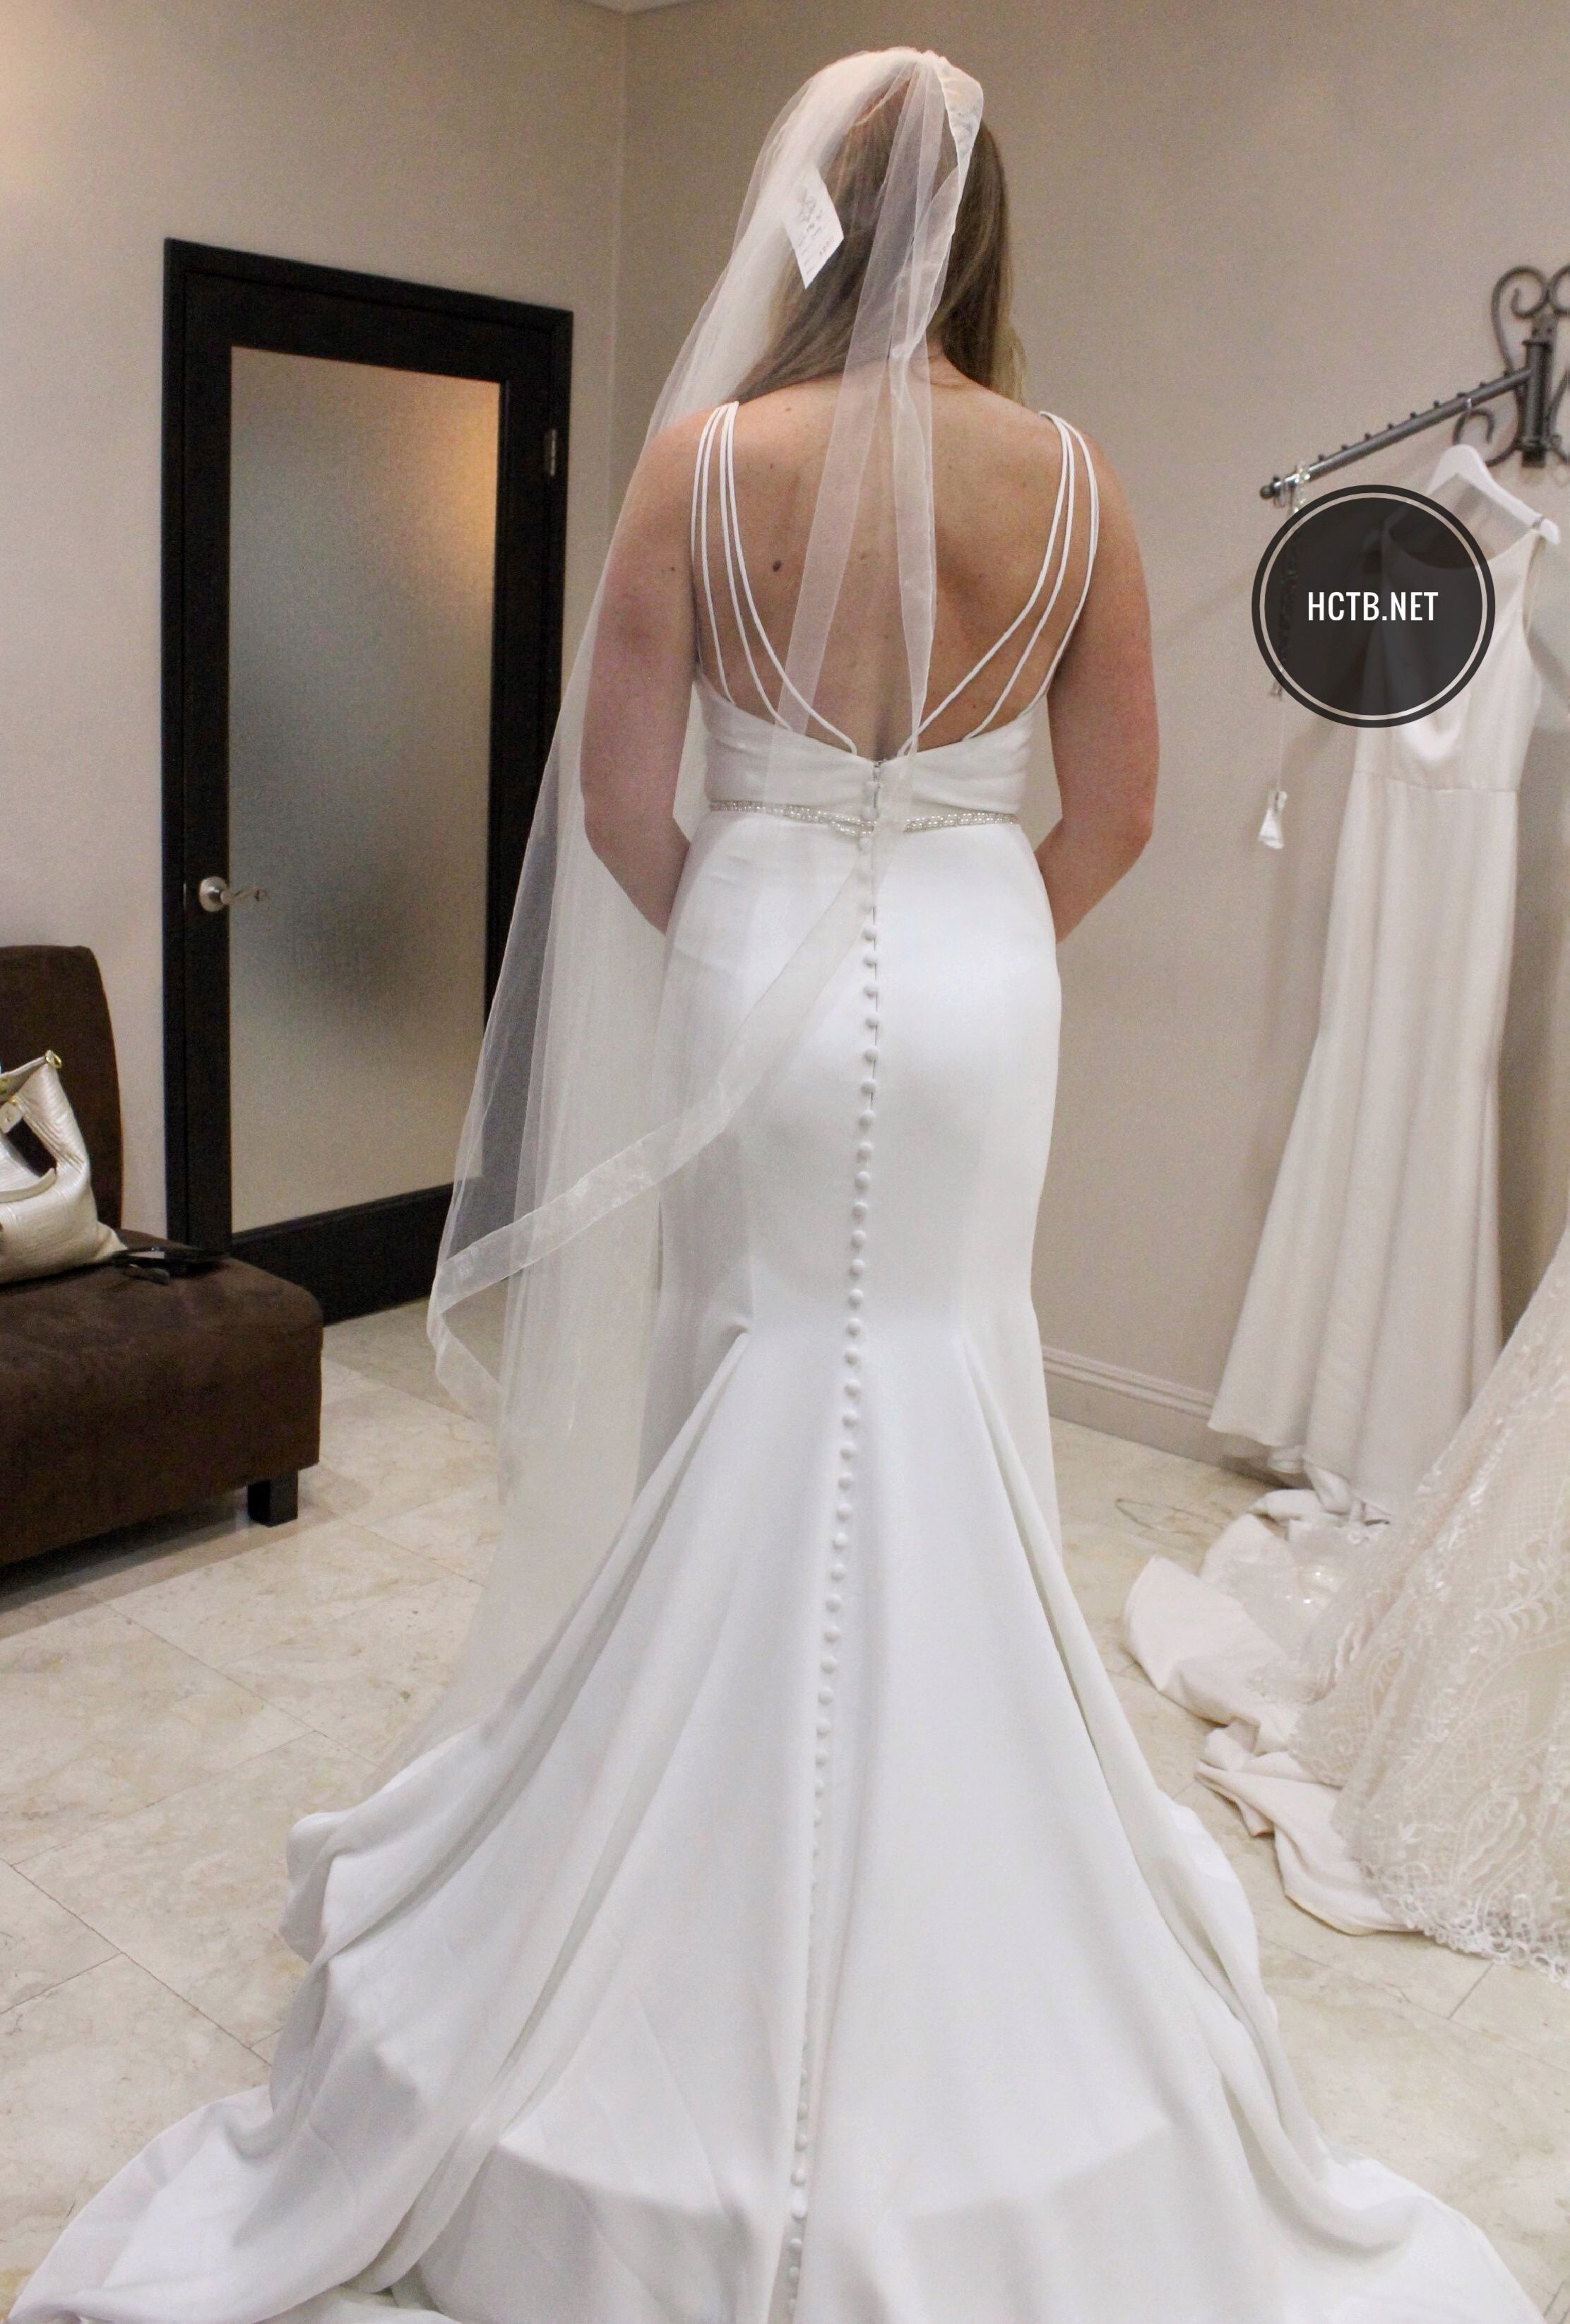 Wedding Dresses San Diego.Wedding Dress At Here Comes The Bride In San Diego